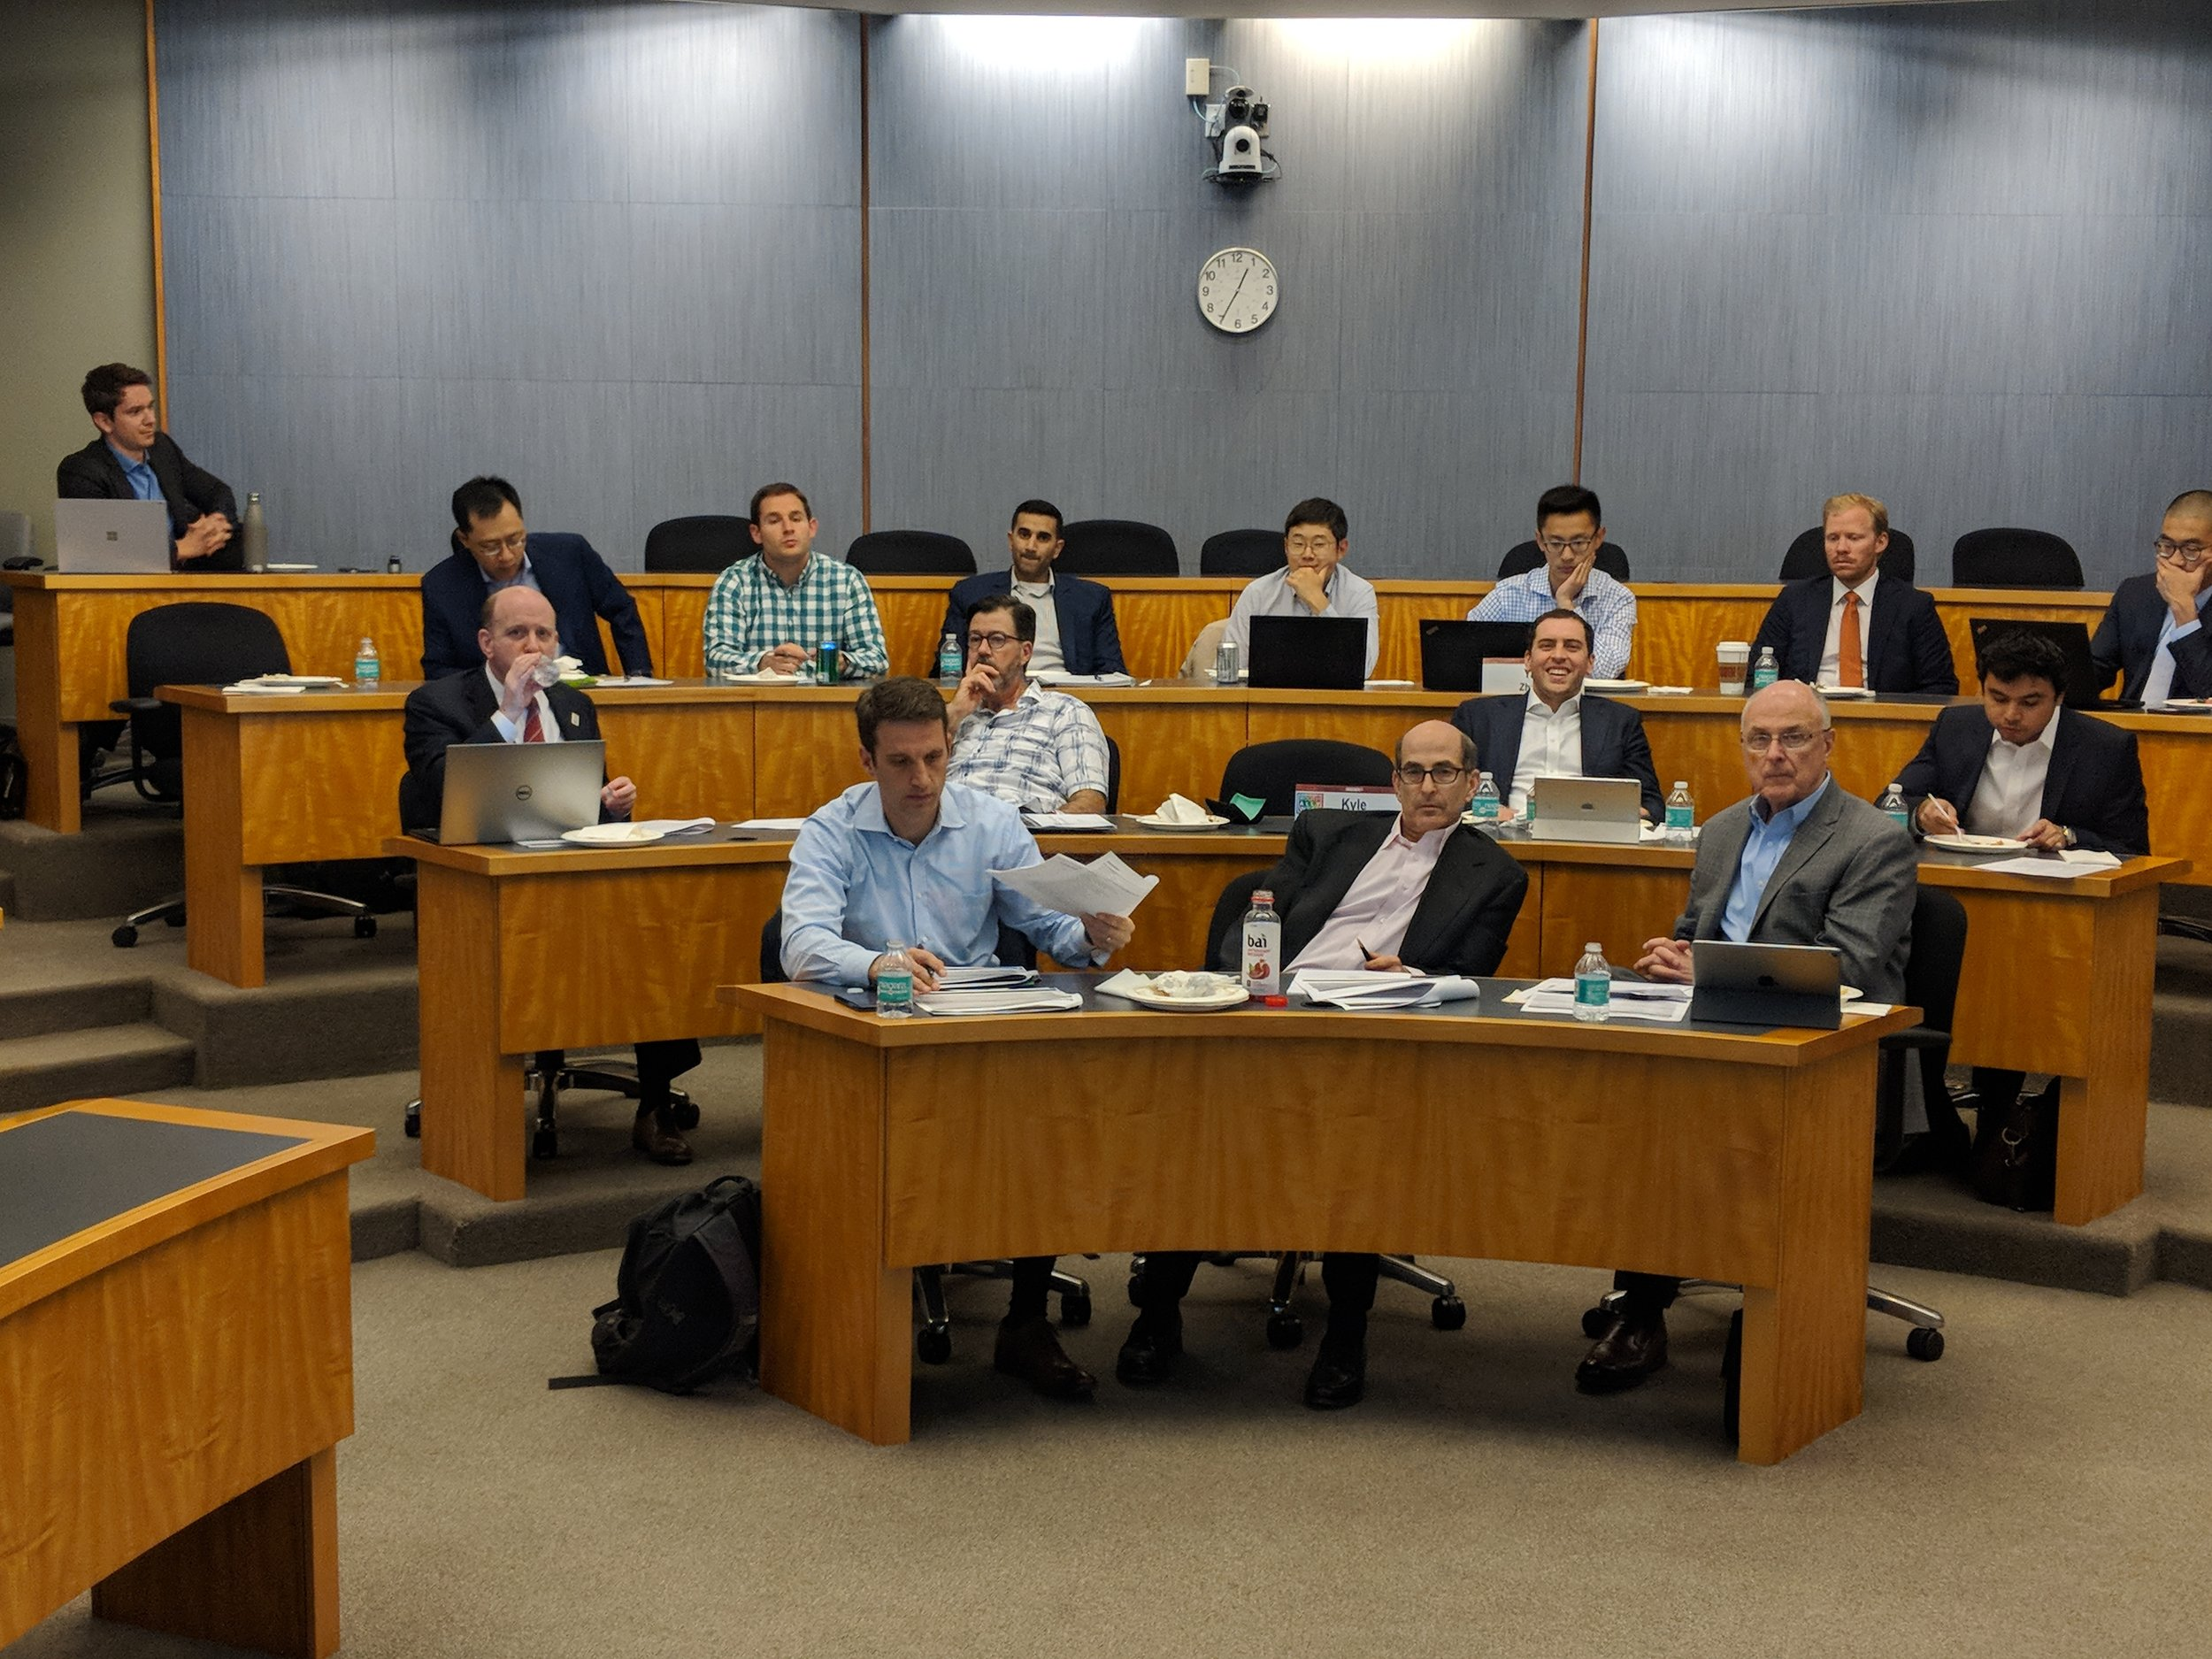 The SMIF committee during a recent board meeting. The SMIF provides students with valuable experience managing investments, balancing risk and return, and trying to prove Professor Eugene Fama wrong by outperforming the market - all with scholarship money for their fellow Boothies on the line!